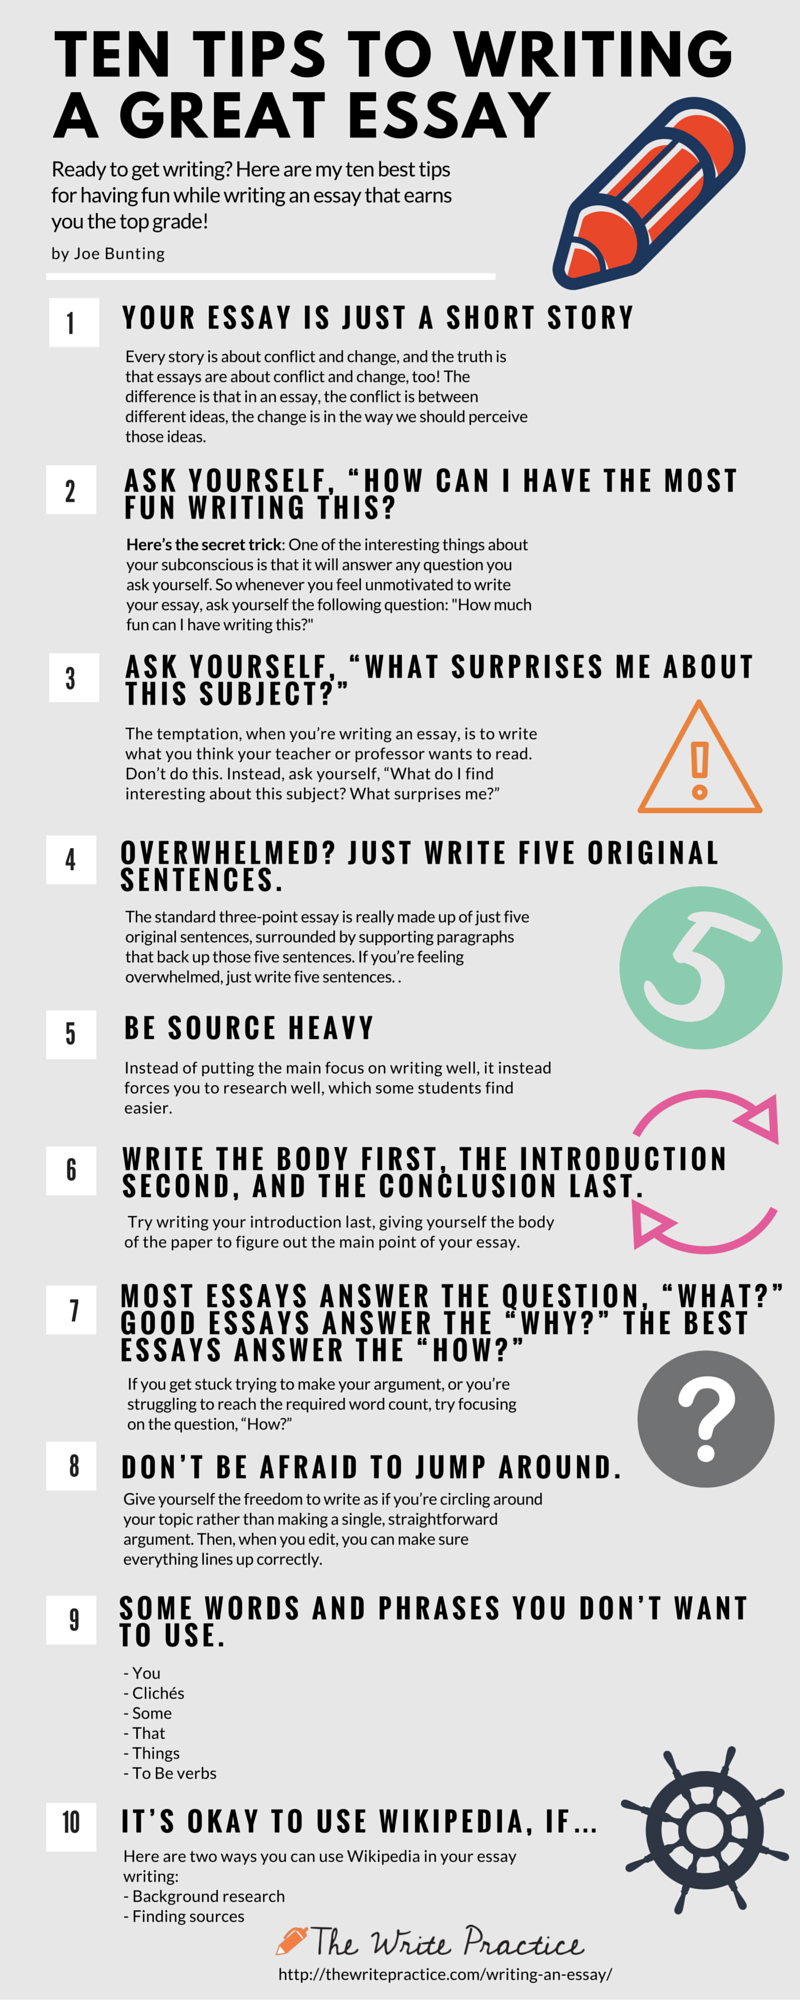 001 How To Write An Amazing Essay Example Tips For Writing Impressive Personal Introduction Hook A Good Pharmacy School Full